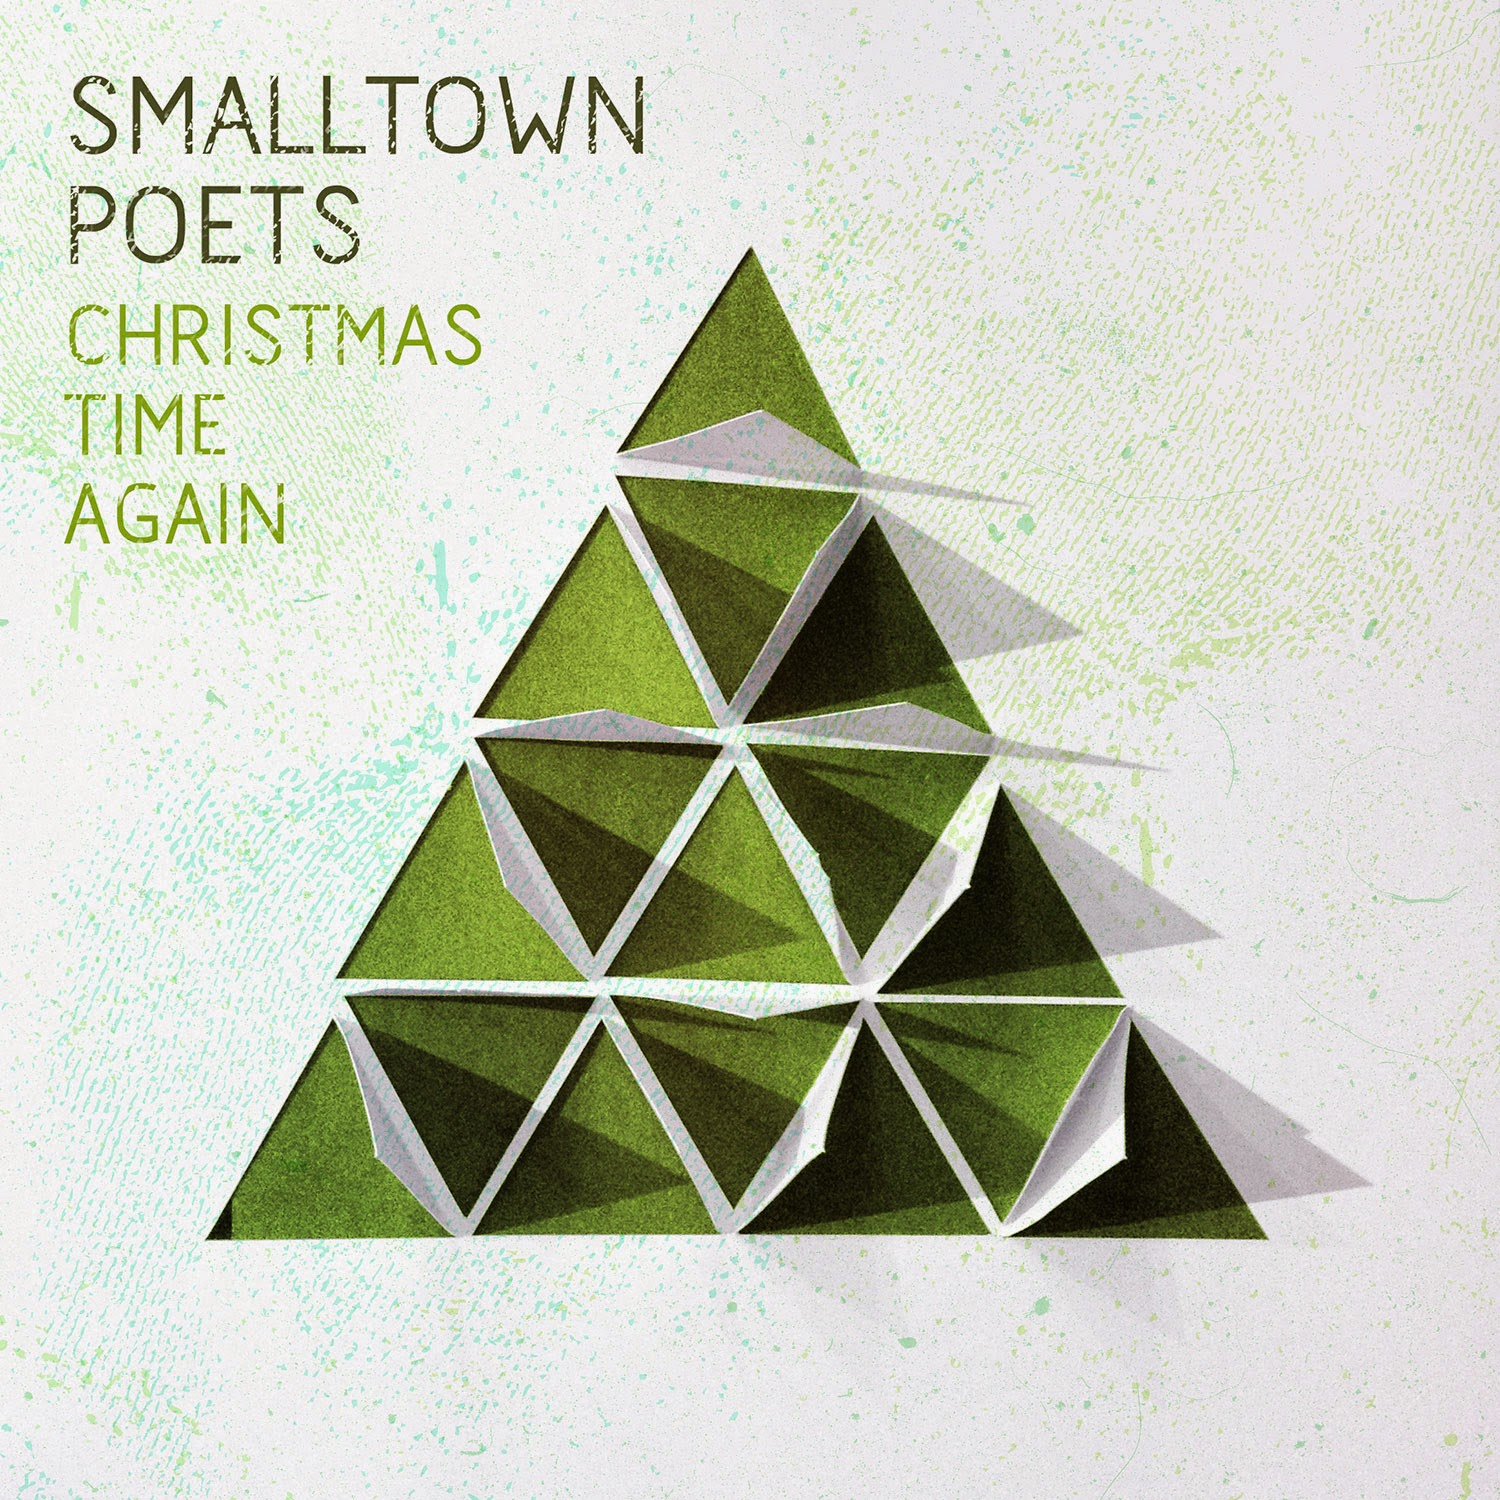 Smalltown Poets - Christmas Time Again 2014 English Christian Album Download